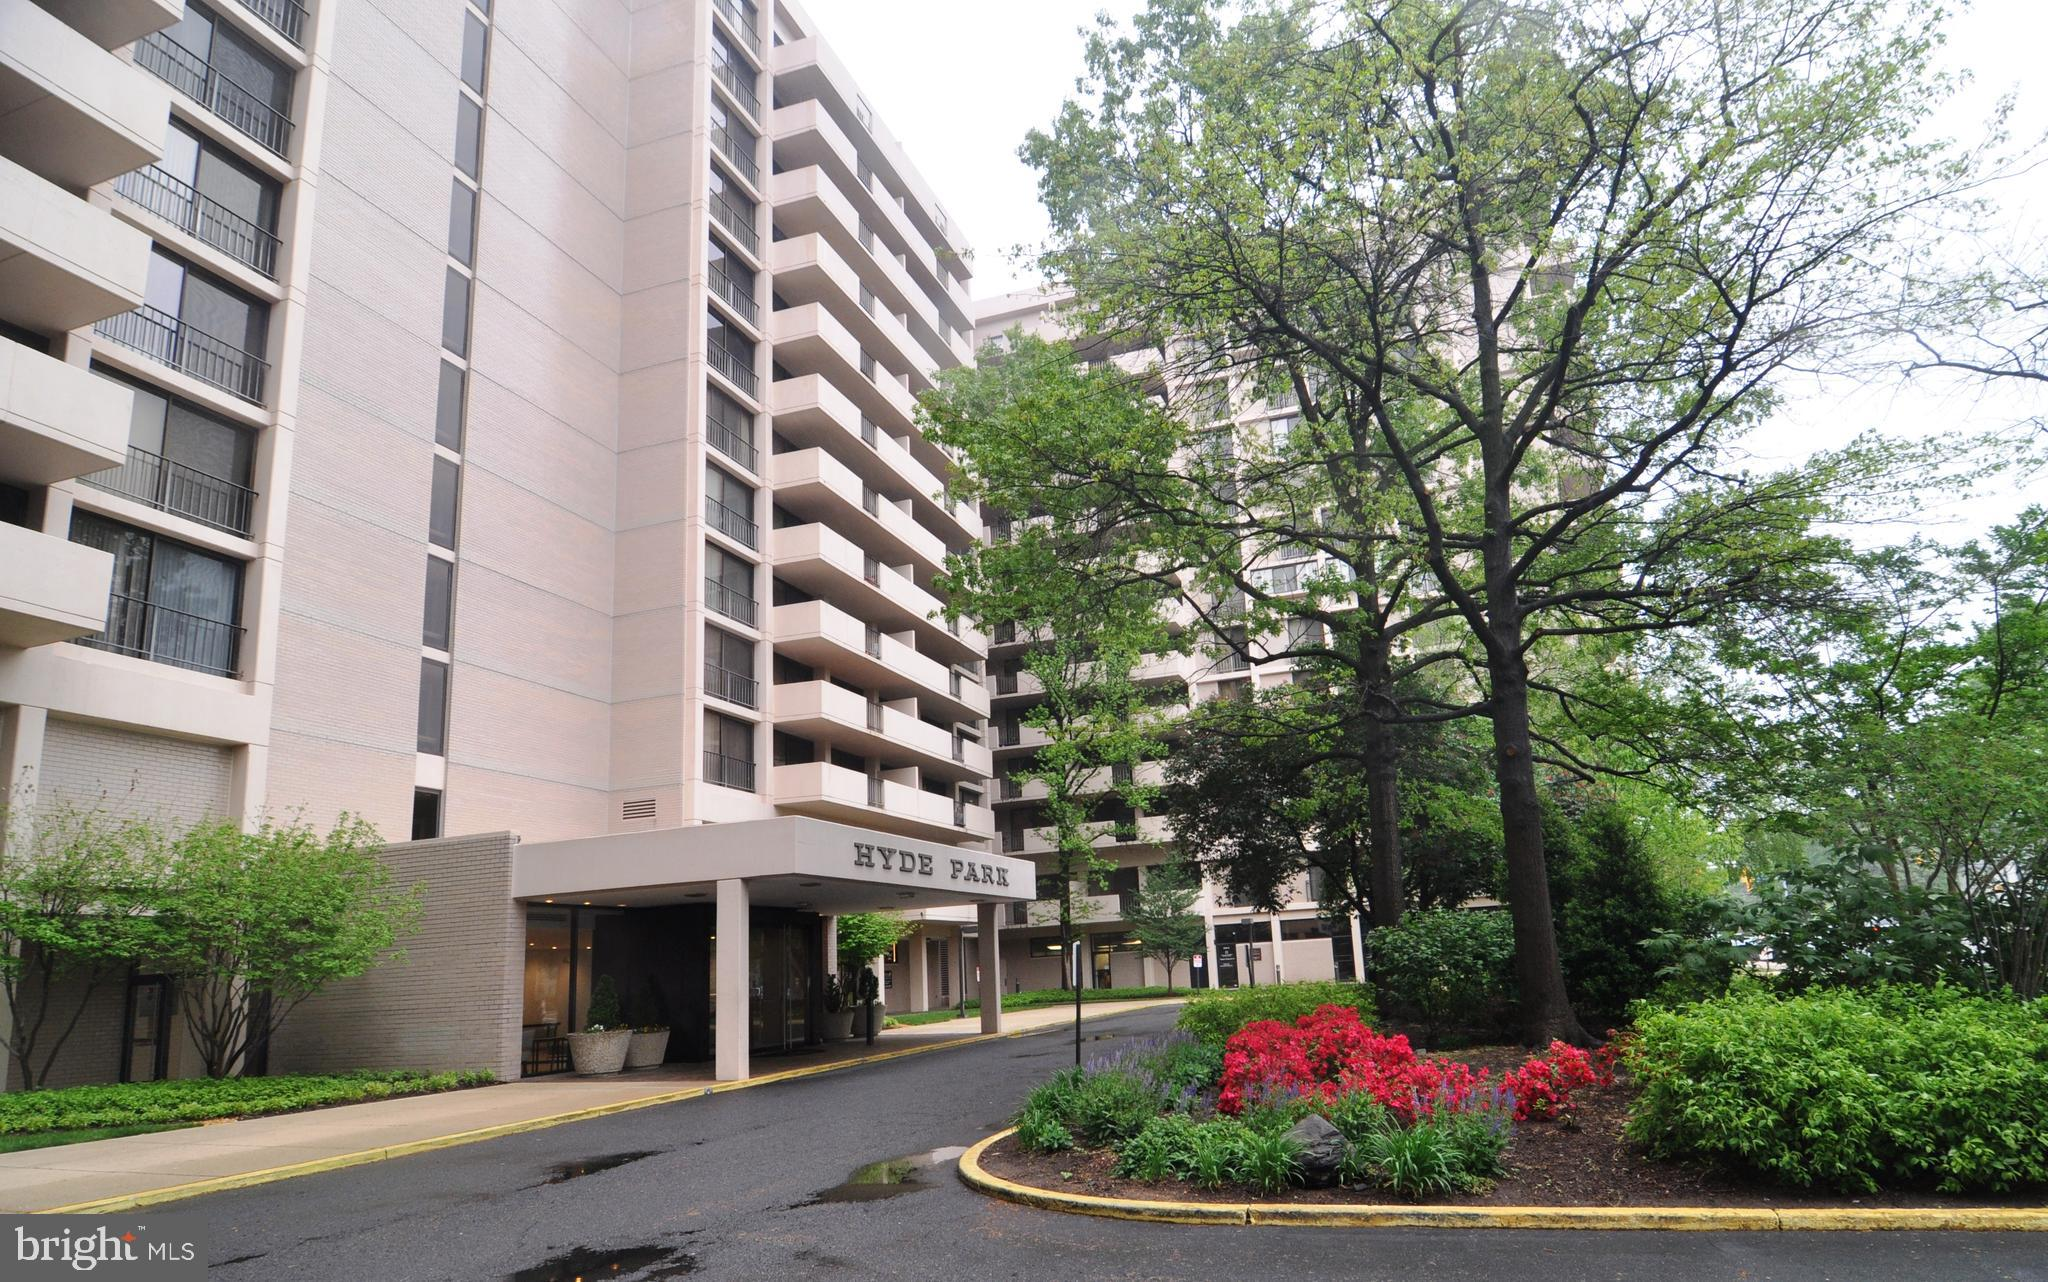 Ballston living at its finest.  MOVE-IN READY,  UPDATED &  light-filled CORNER UNIT.  LARGEST 2 BEDROOM/2 BATHROOM MODEL at Hyde Park.  Ultra-spacious home offering more than 1,700 square feet of space.  Heating, air-conditioning,  gas,  electricity, water/sewer all included in condo fees!  Freshly painted, new carpet, renovated eat-in kitchen with white cabinets, granite counter tops, stainless steel appliances, 5-burner gas range, pantry,  hardwood laminate floors and large windows.  Sliding glass windows replaced in 2019.  Enjoy watching the skyline from your balcony located just off of the dining room.  Open floor plan living/dining room.   Huge Master bedroom with en-suite bathroom, extra large tiled shower,  2 walk-in closets.  Just blocks to the Ballston Metro Station,  Metro and ART buses stop right on the corner, bike-sharing stations nearby.  Annual  garage parking fees available for up to 3 vehicles- 1st vehicle-$225; 2nd Vehicle-$375; Third Vehicle-$675;  Motorcycle- $125.   $250 Move-in Fee . Additional storage lockers available for rent.  24-hour Front Desk Concierge and on-site management.  Outdoor pool and community garden, private park with gas grills, gazebo and picnic tables.  Hyde Park is a smoke-free community.   Pet restrictions apply.